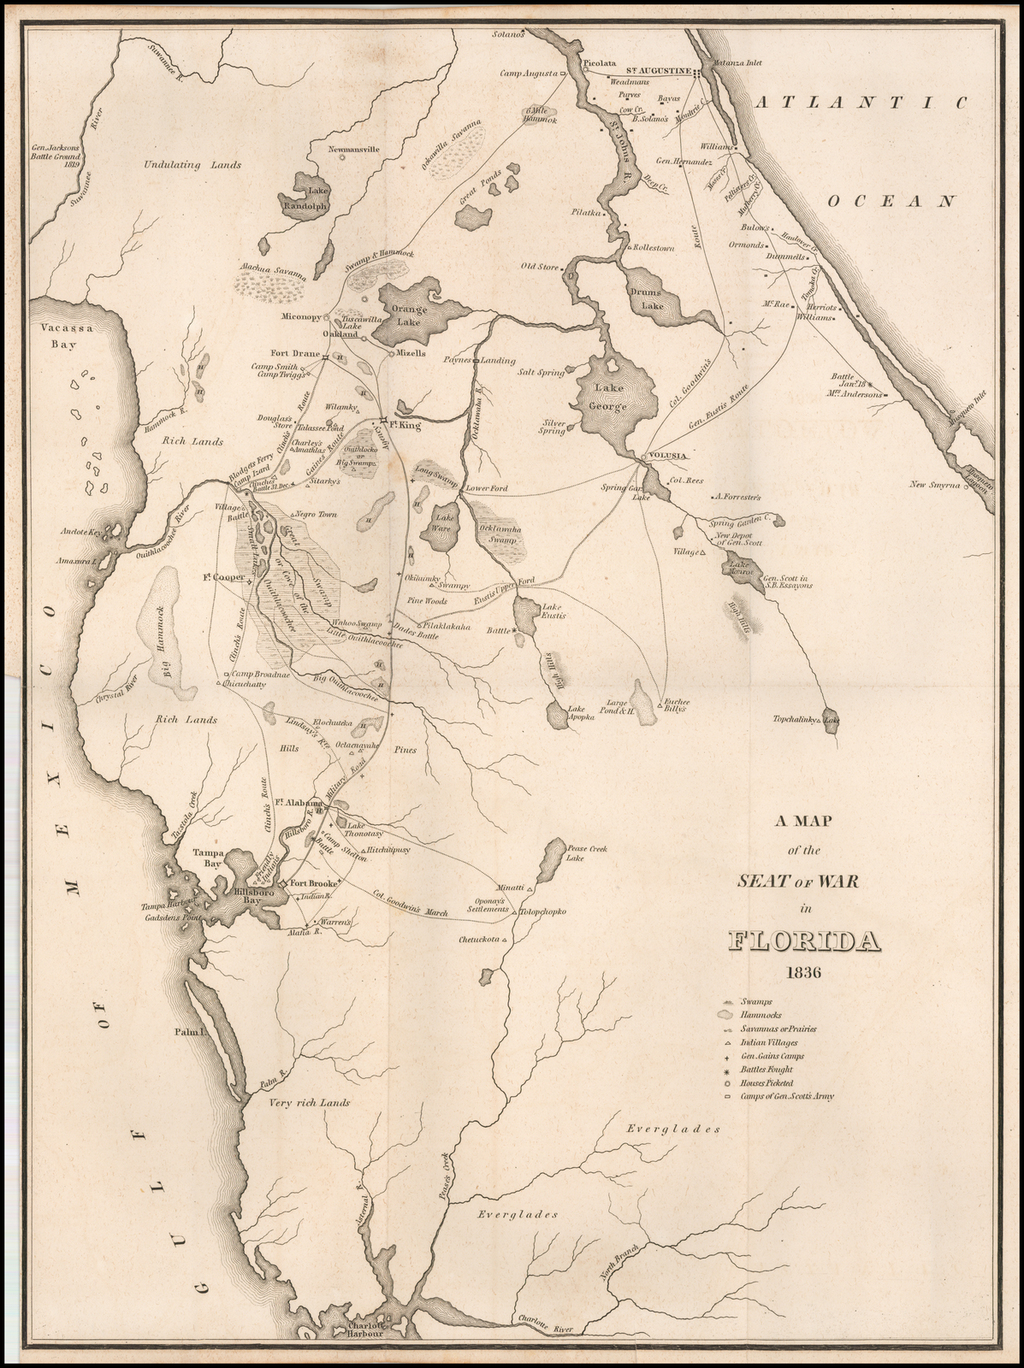 Map 0f Florida.A Map Of The Seat Of War In Florida 1836 Barry Lawrence Ruderman